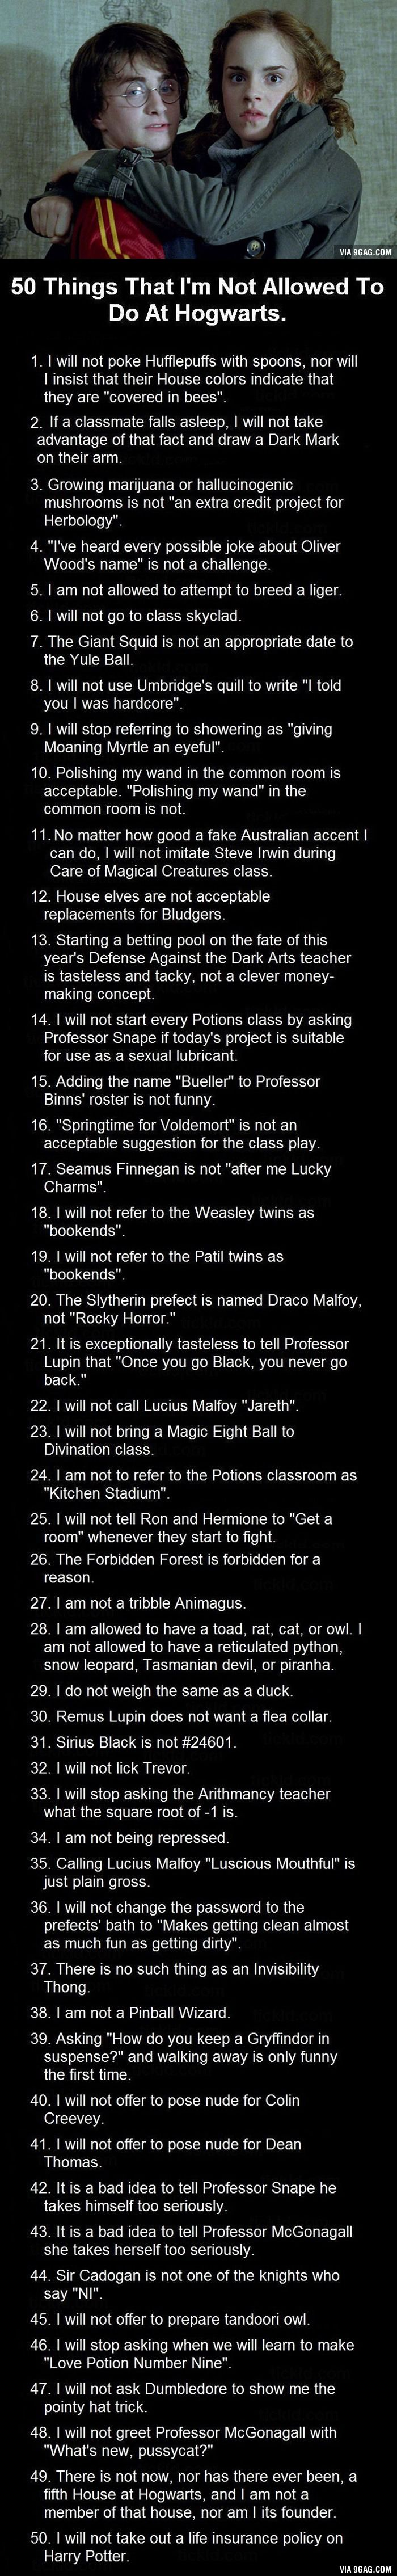 50 Things I'm Not Allowed To Do At Hogwarts. These Are Bloody Brilliant.